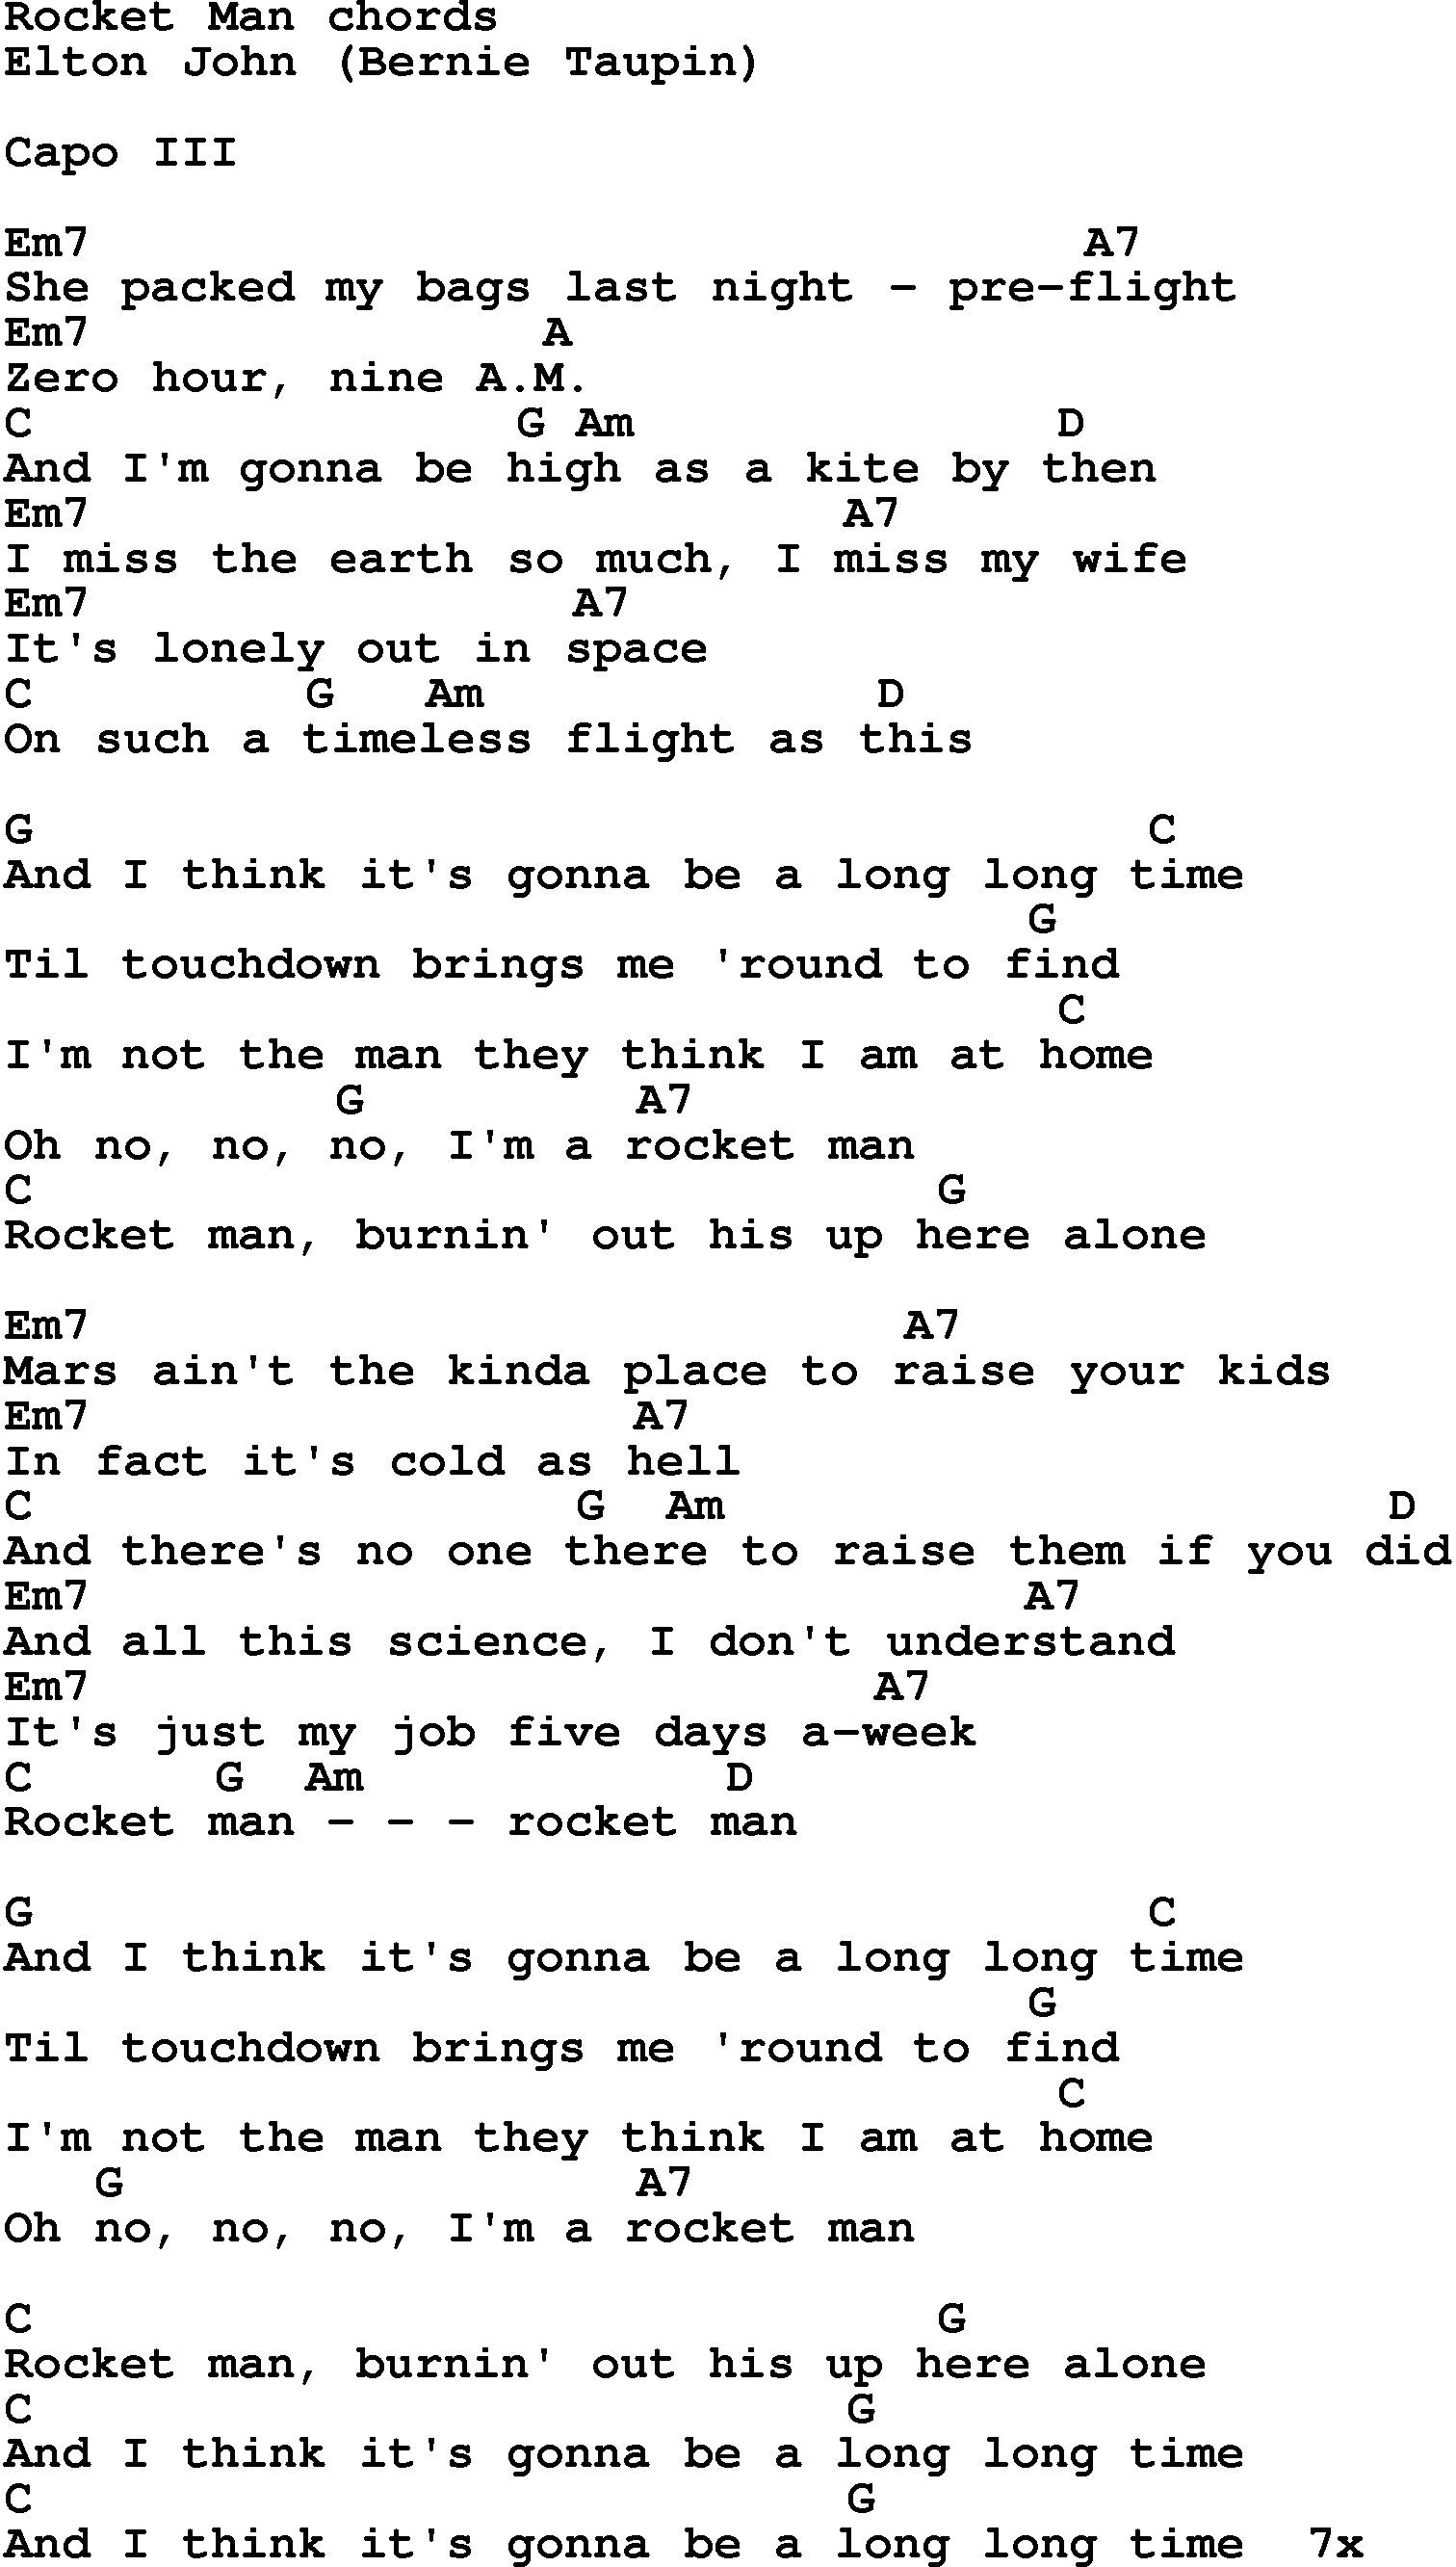 Piano Man Chords Song Lyrics With Guitar Chords For Rocket Man